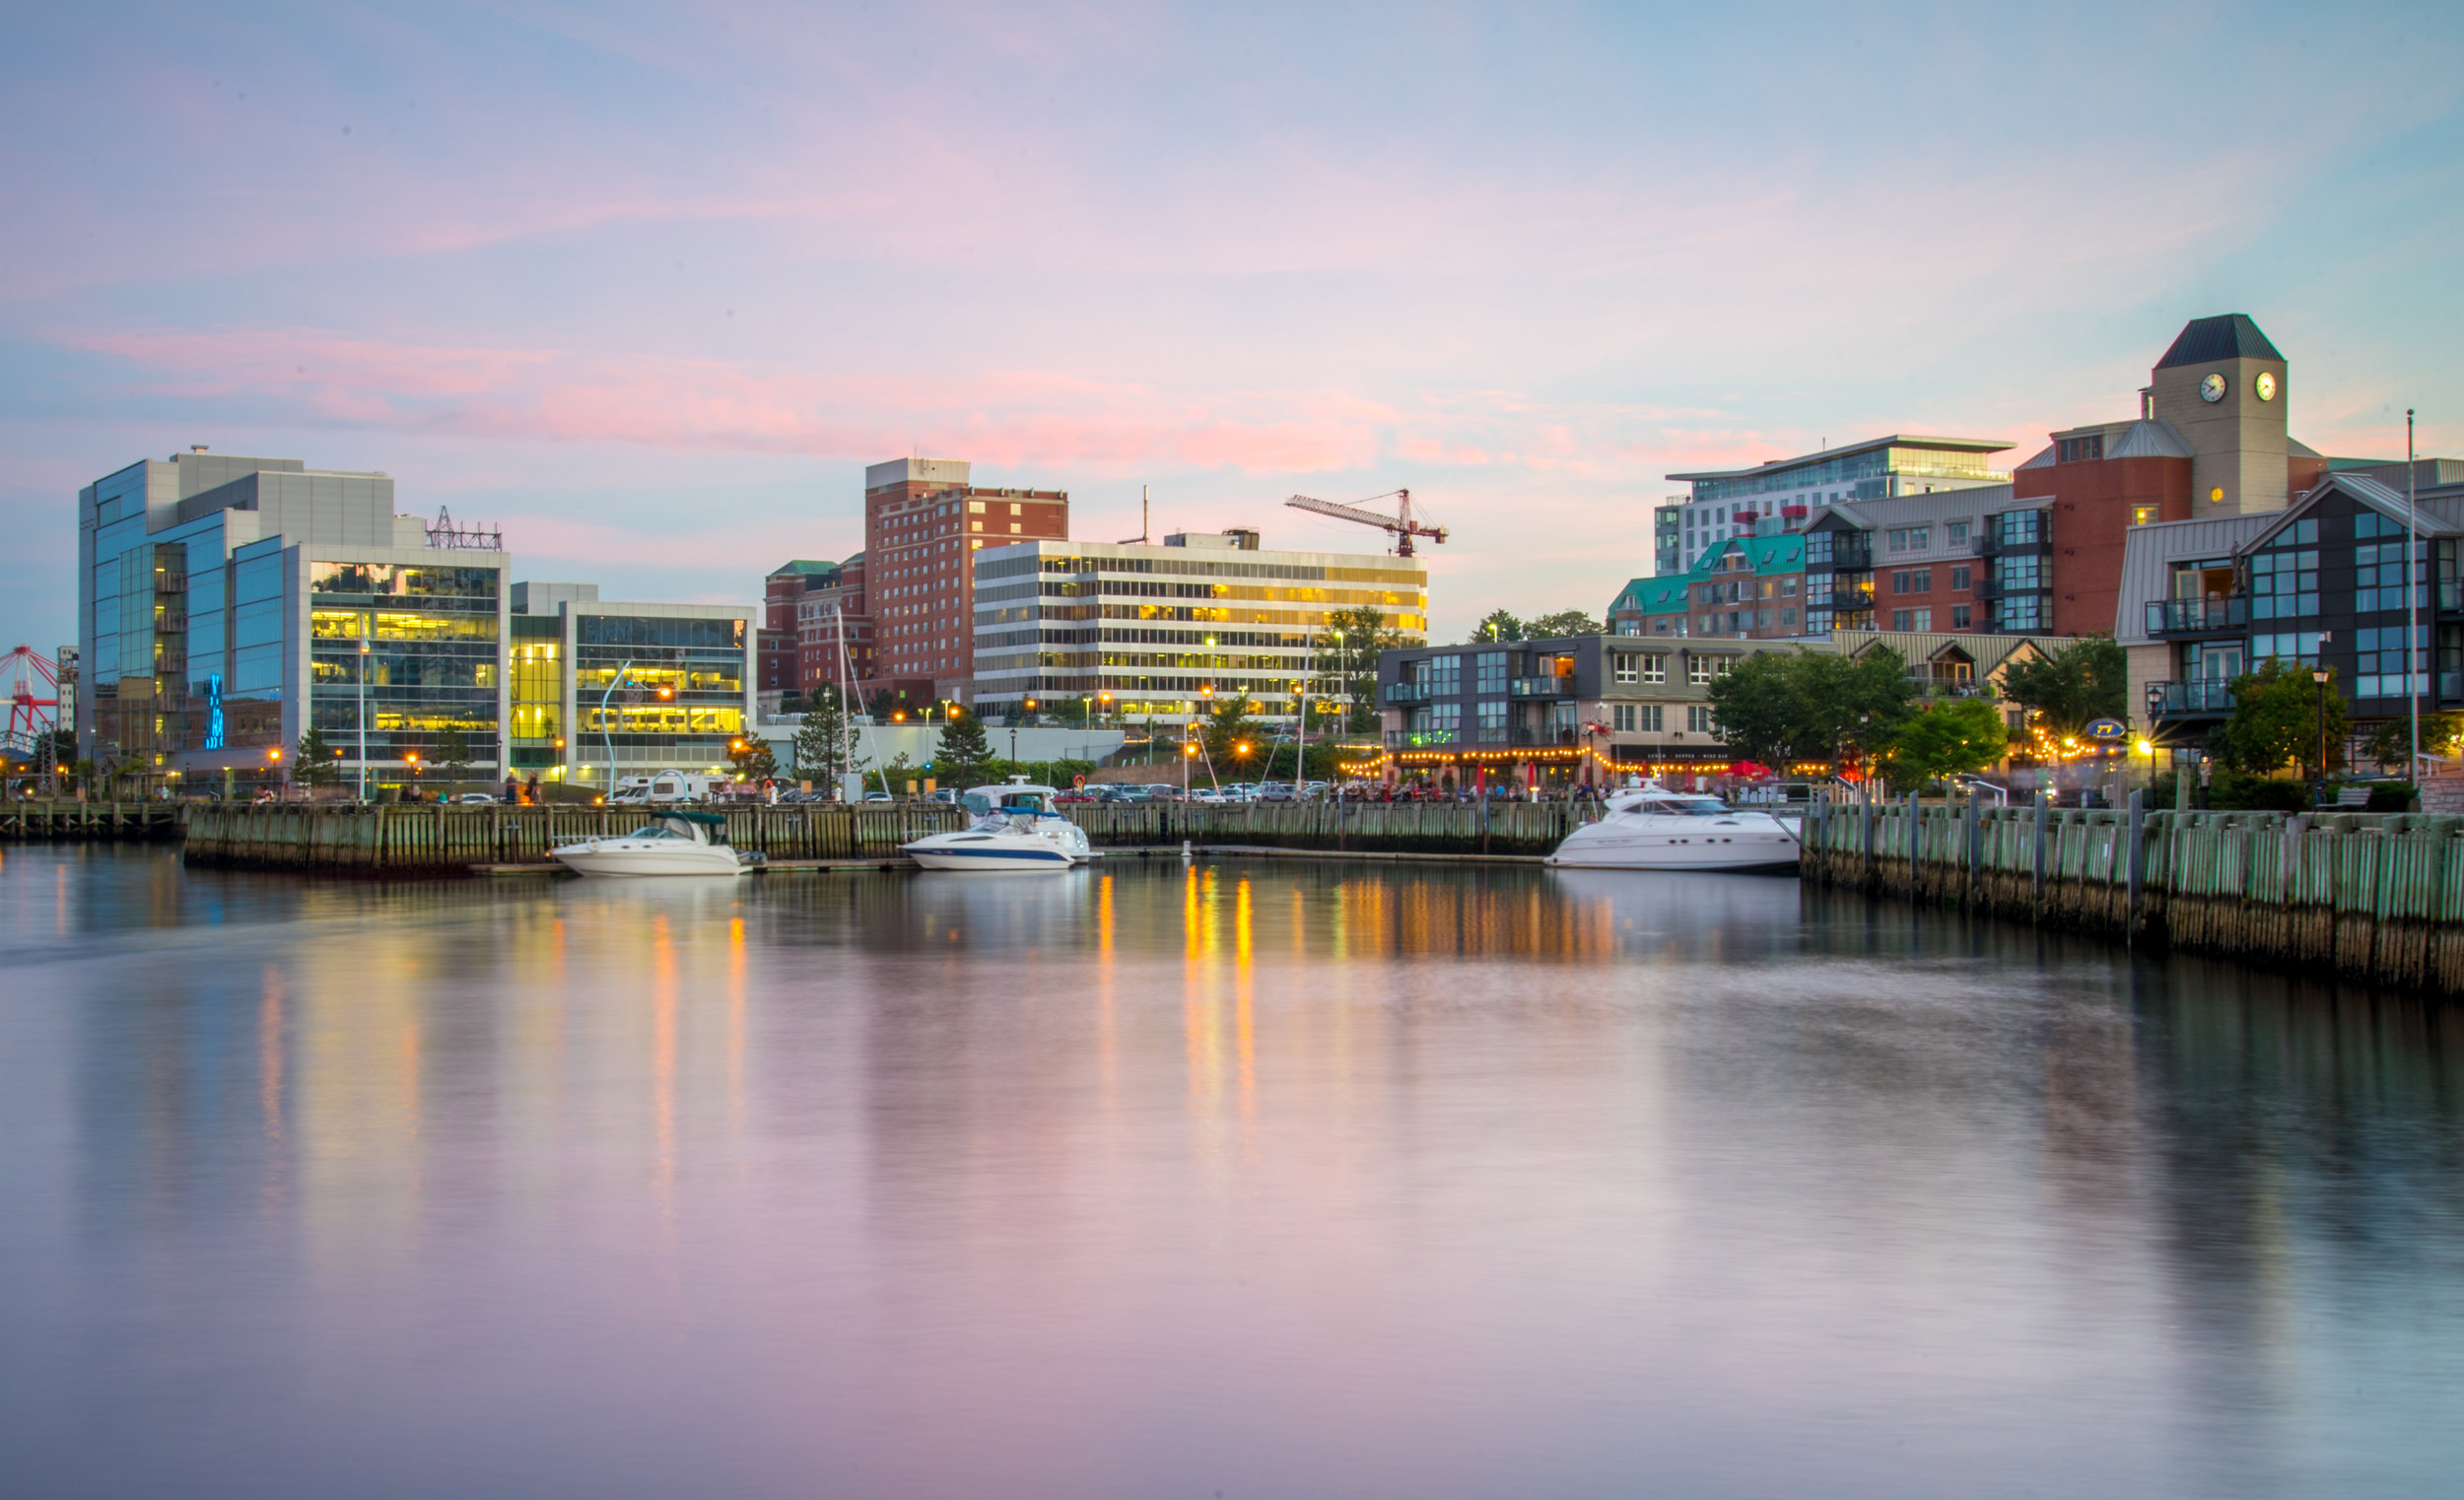 Discover Halifax - Named one of the Top 10 Global DESTINATIONS ON THE RISE in TripAdvisor's 2018 Travelers' Choice Awards. Come see what all the buzz is about!